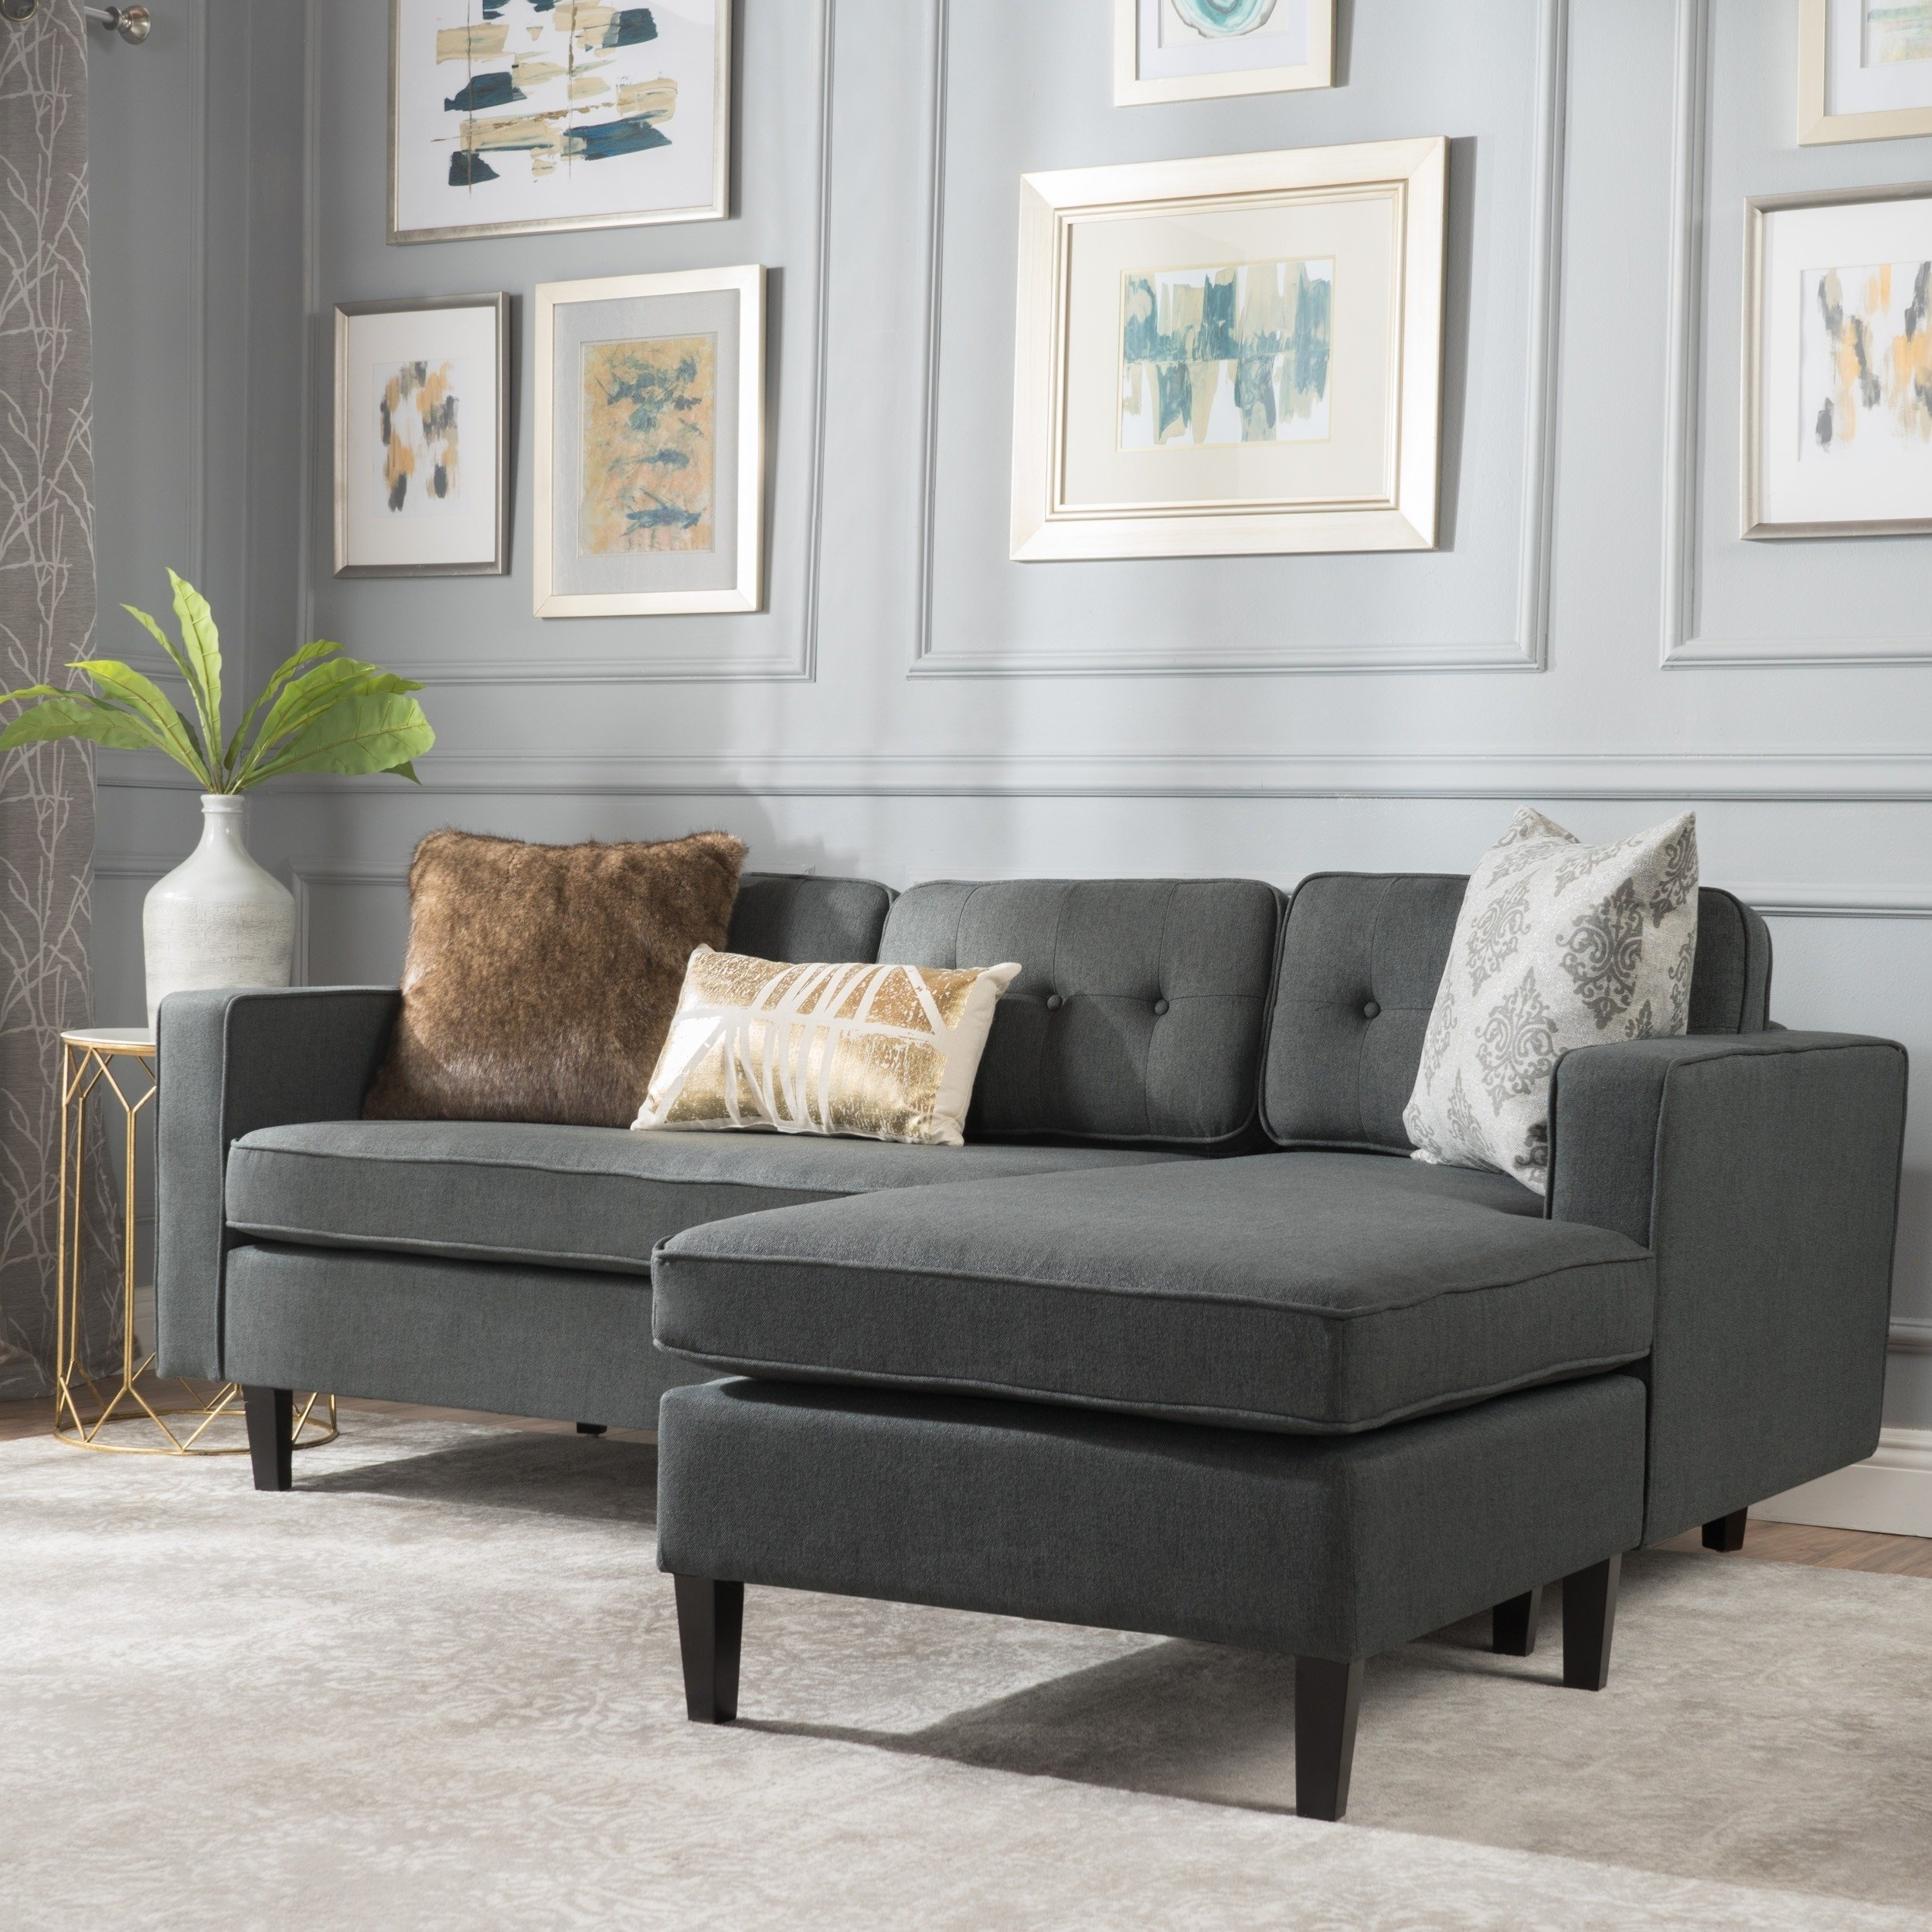 2 Piece Chaise Sectional Sofa | Baci Living Room within Tenny Cognac 2 Piece Left Facing Chaise Sectionals With 2 Headrest (Image 3 of 30)